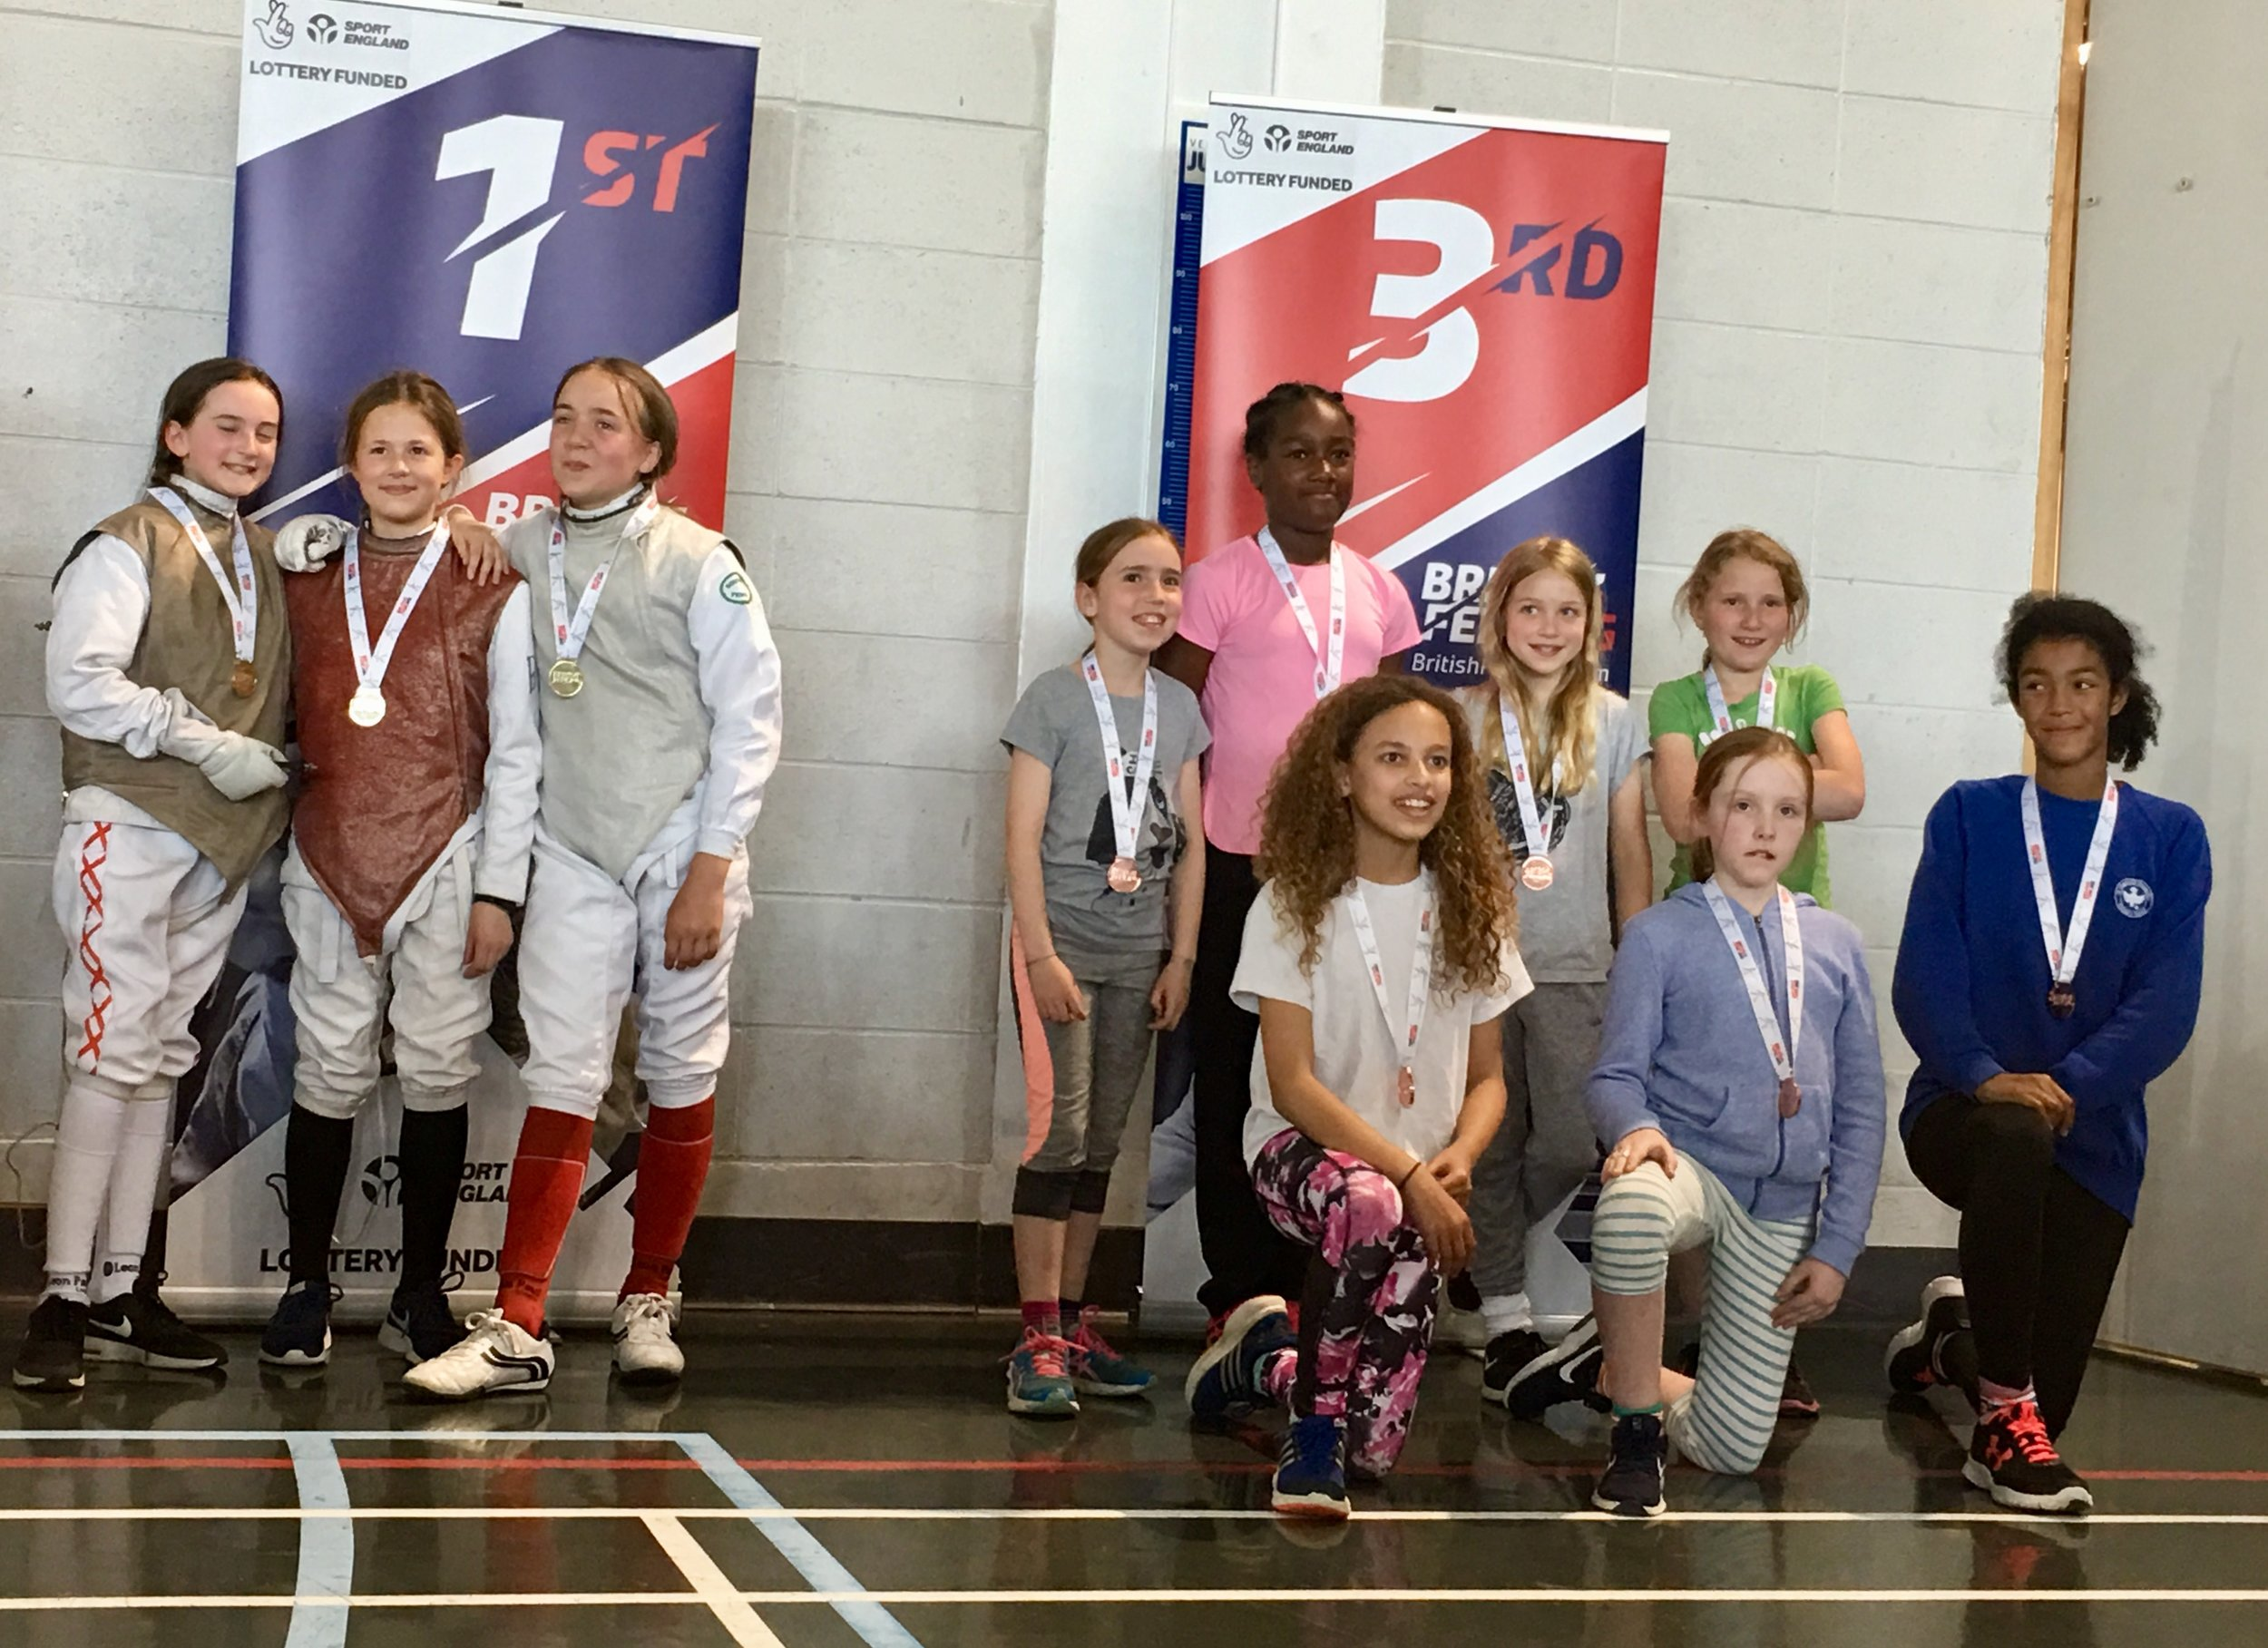 3 of our School Teams taking Gold and 2 Bronzes at the British School Team championships 2018